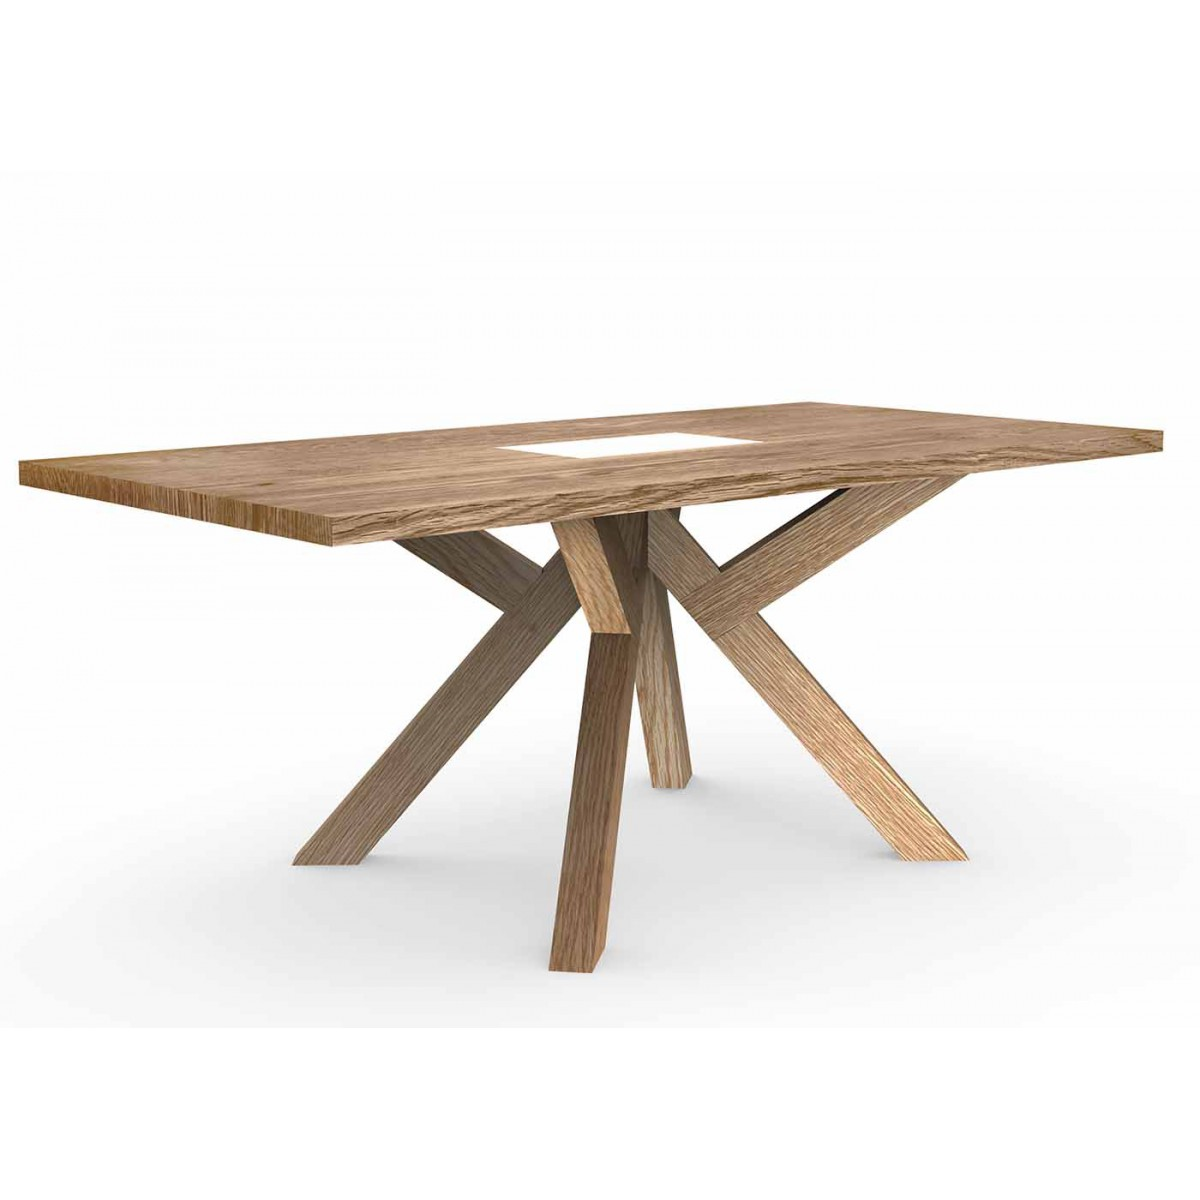 Table moderne en bois maison design - Table moderne bois ...